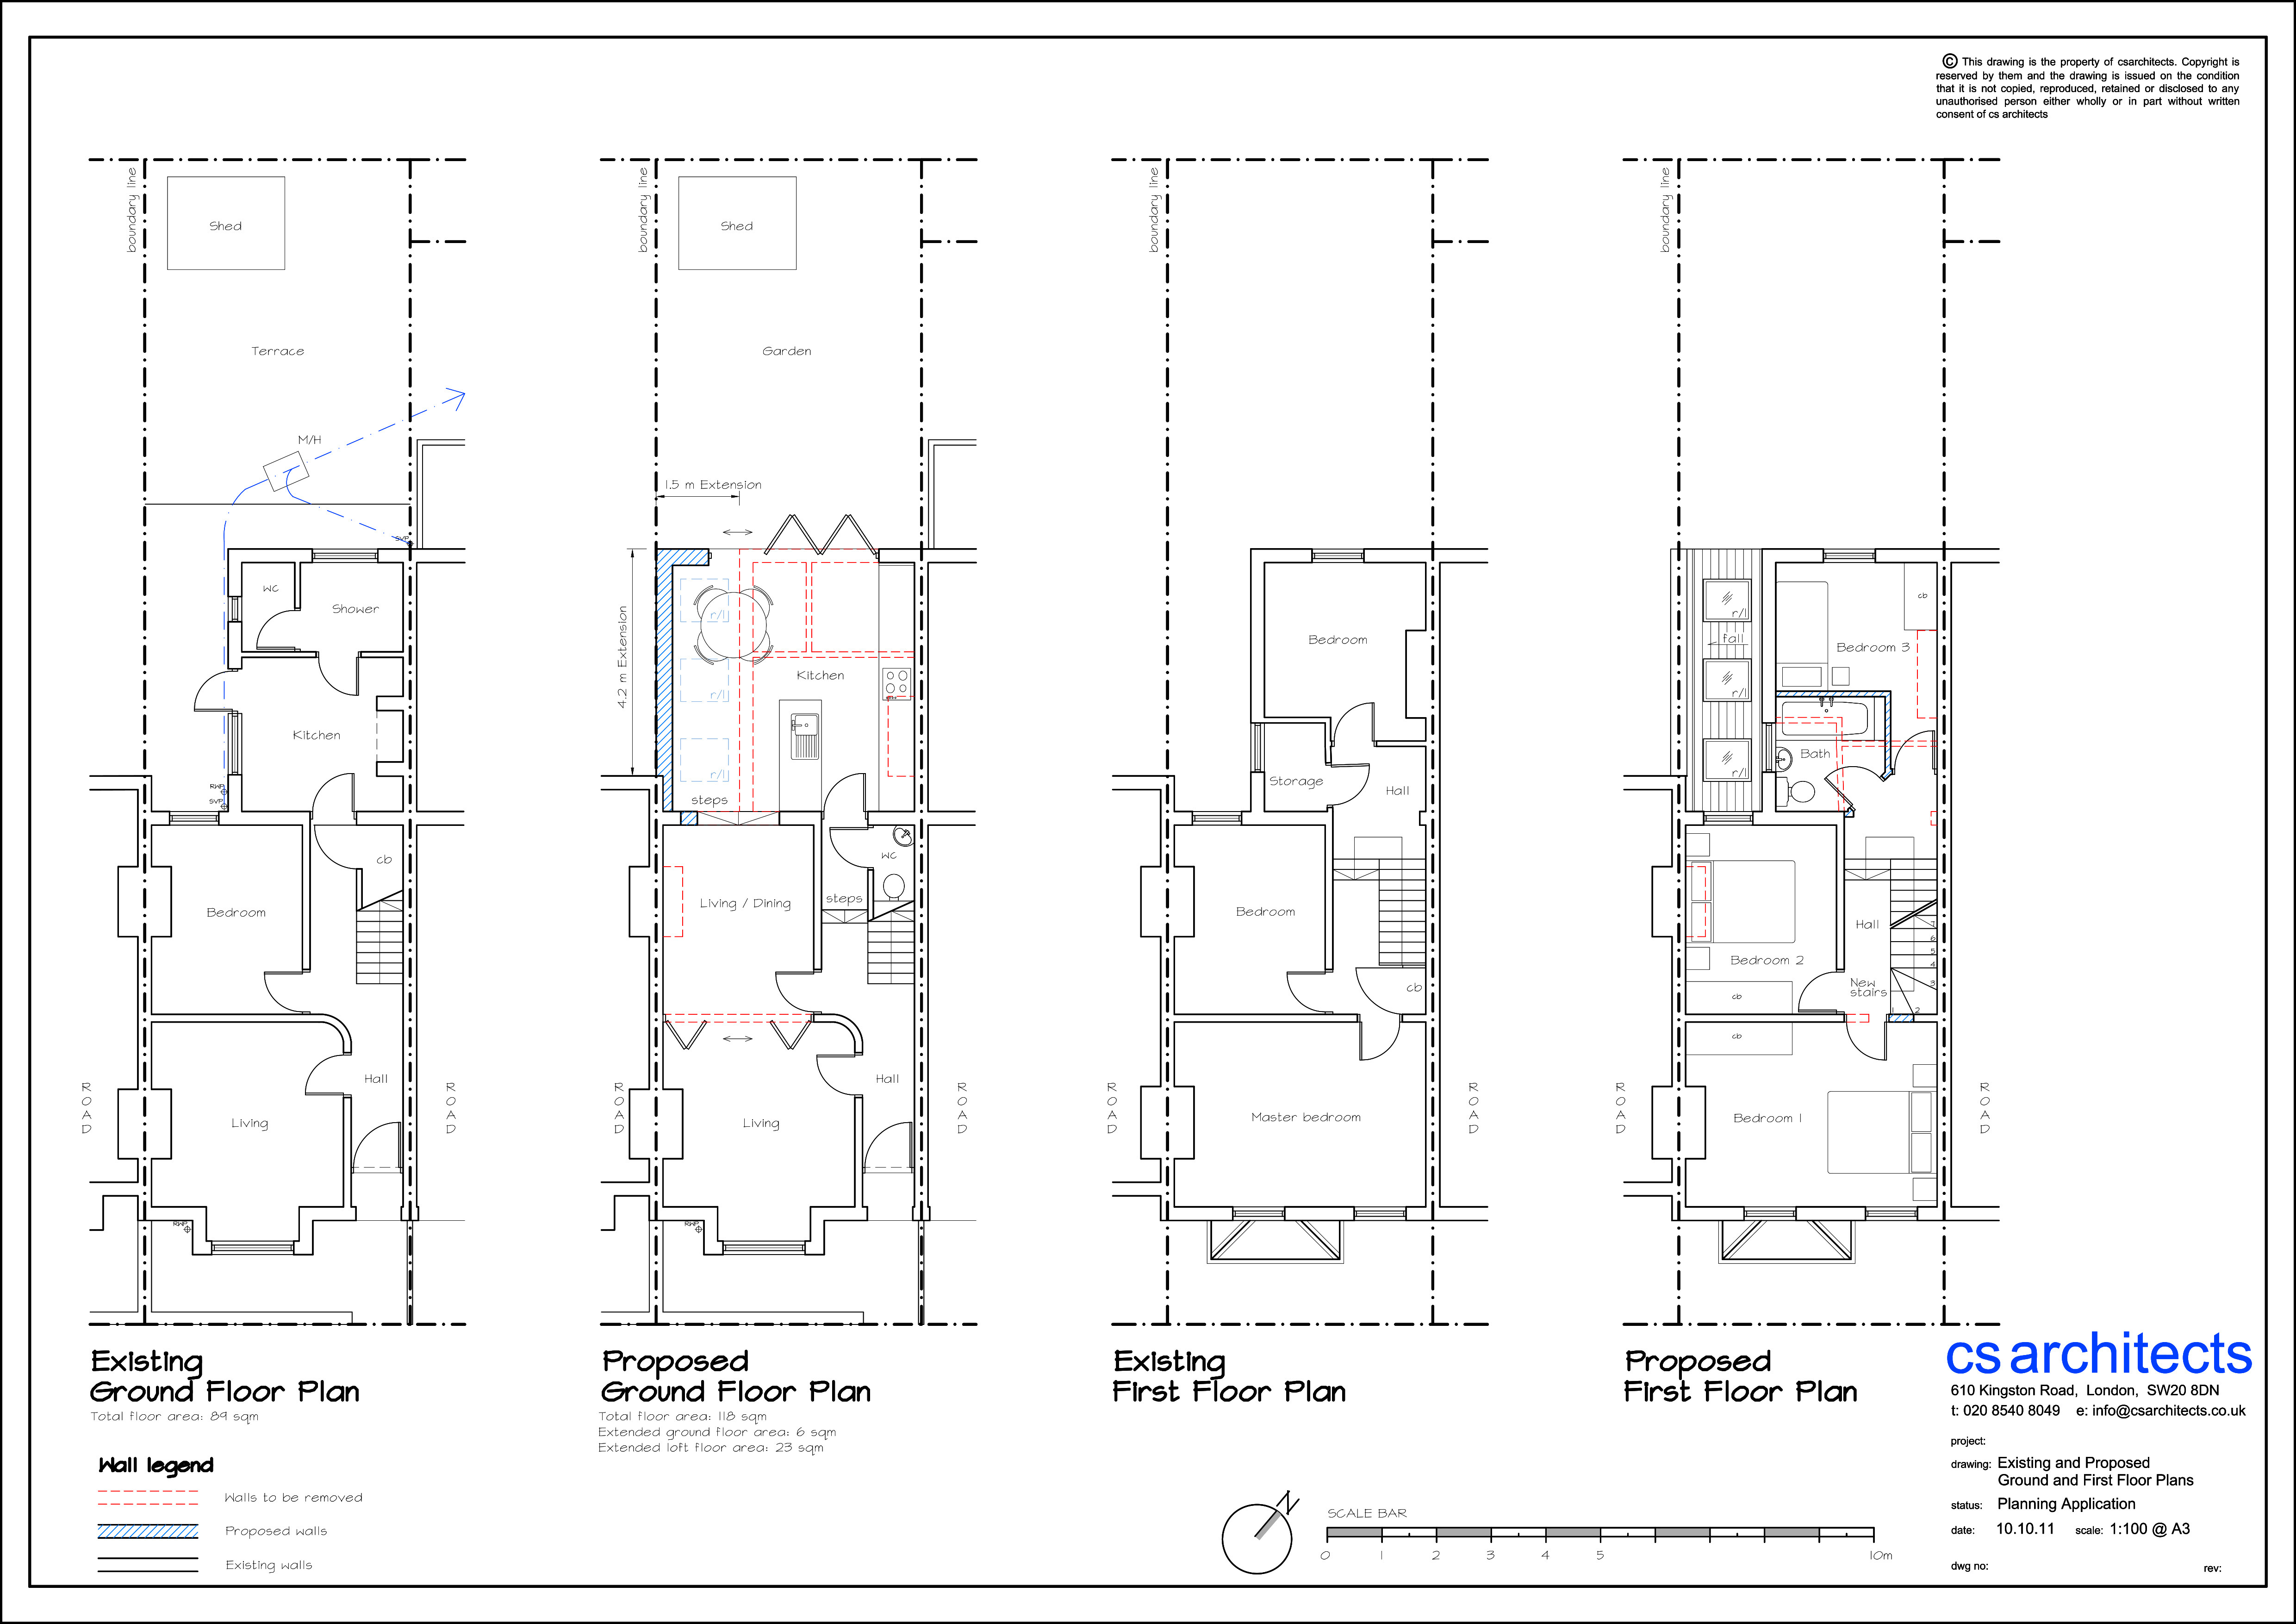 existing and proposed ground and first floor plan planning application wimbledon united kingdom - Floor Plan Application